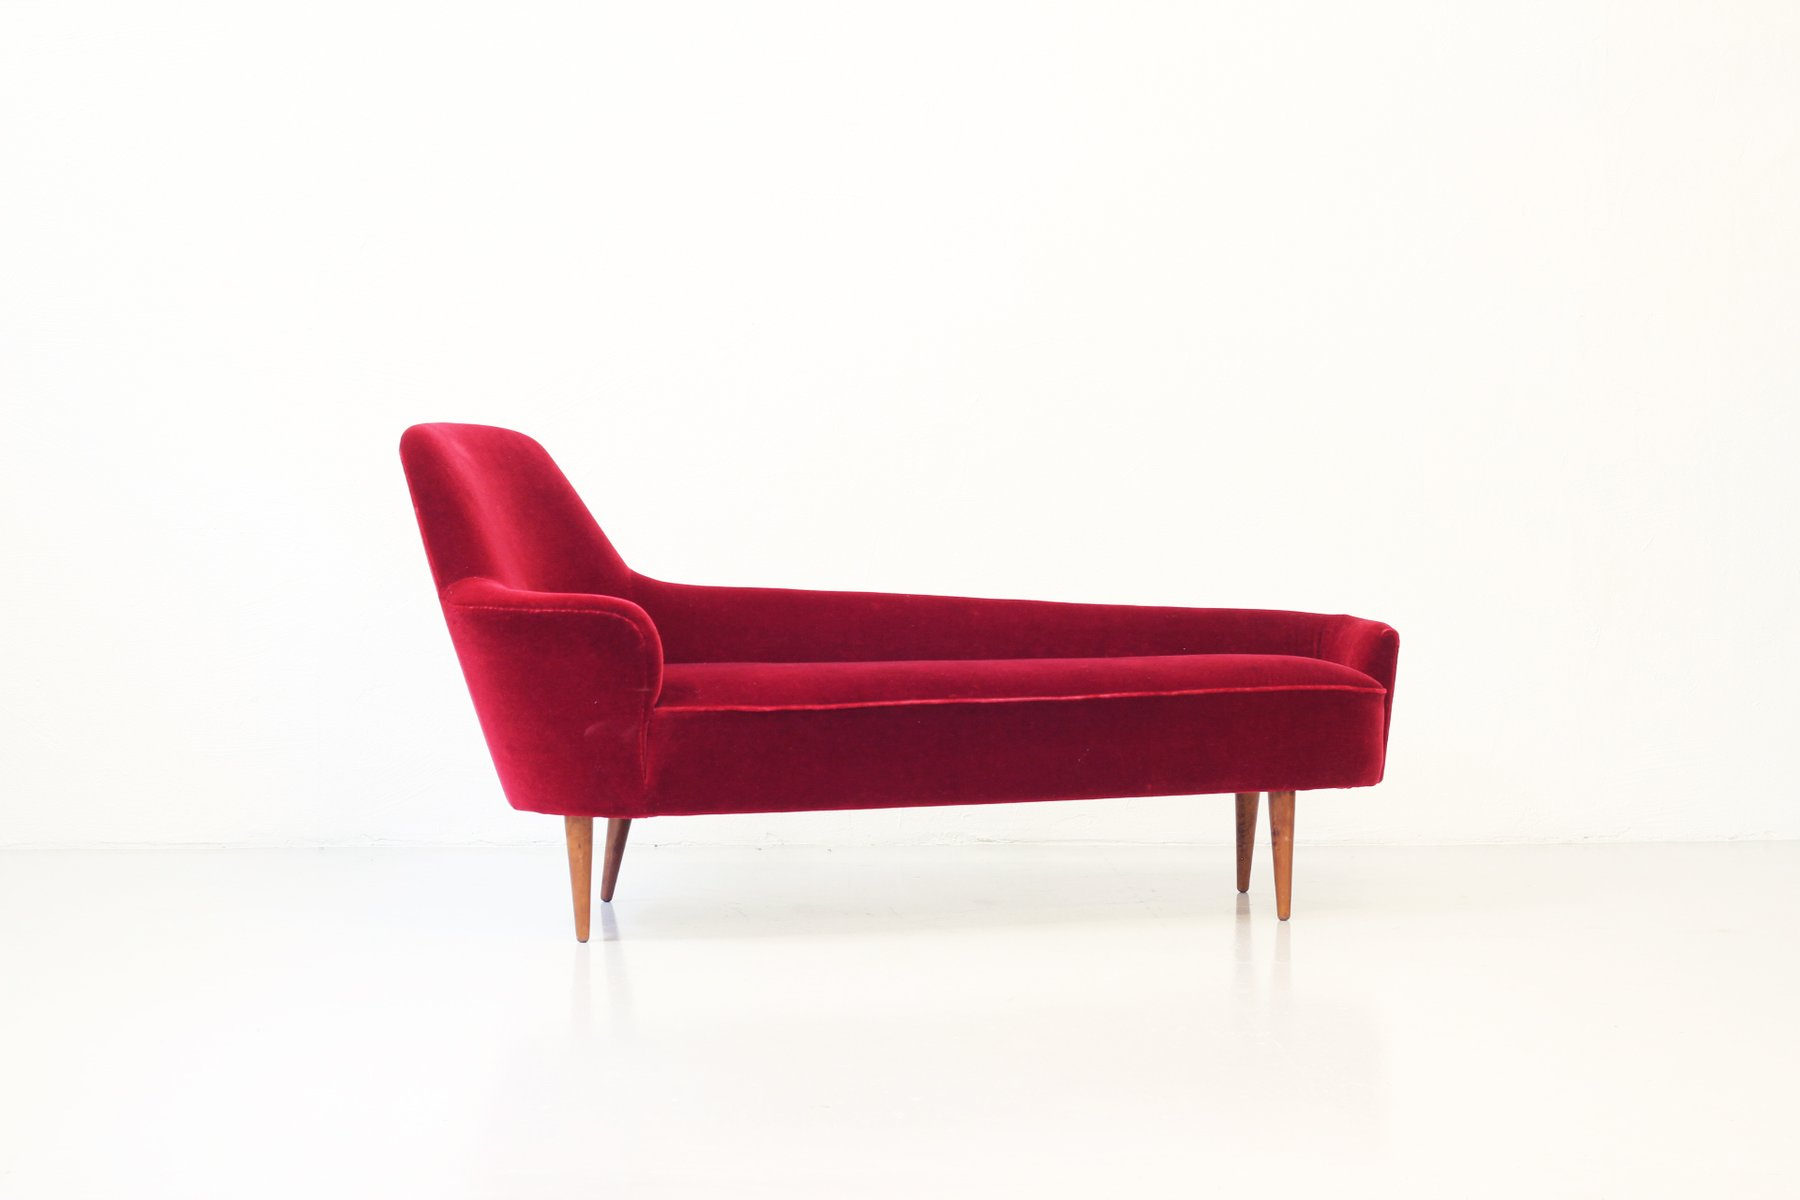 Singoalla chaise lounge by gillis lundgren for ikea 1961 for sale at pamono - Chaise empilable ikea ...